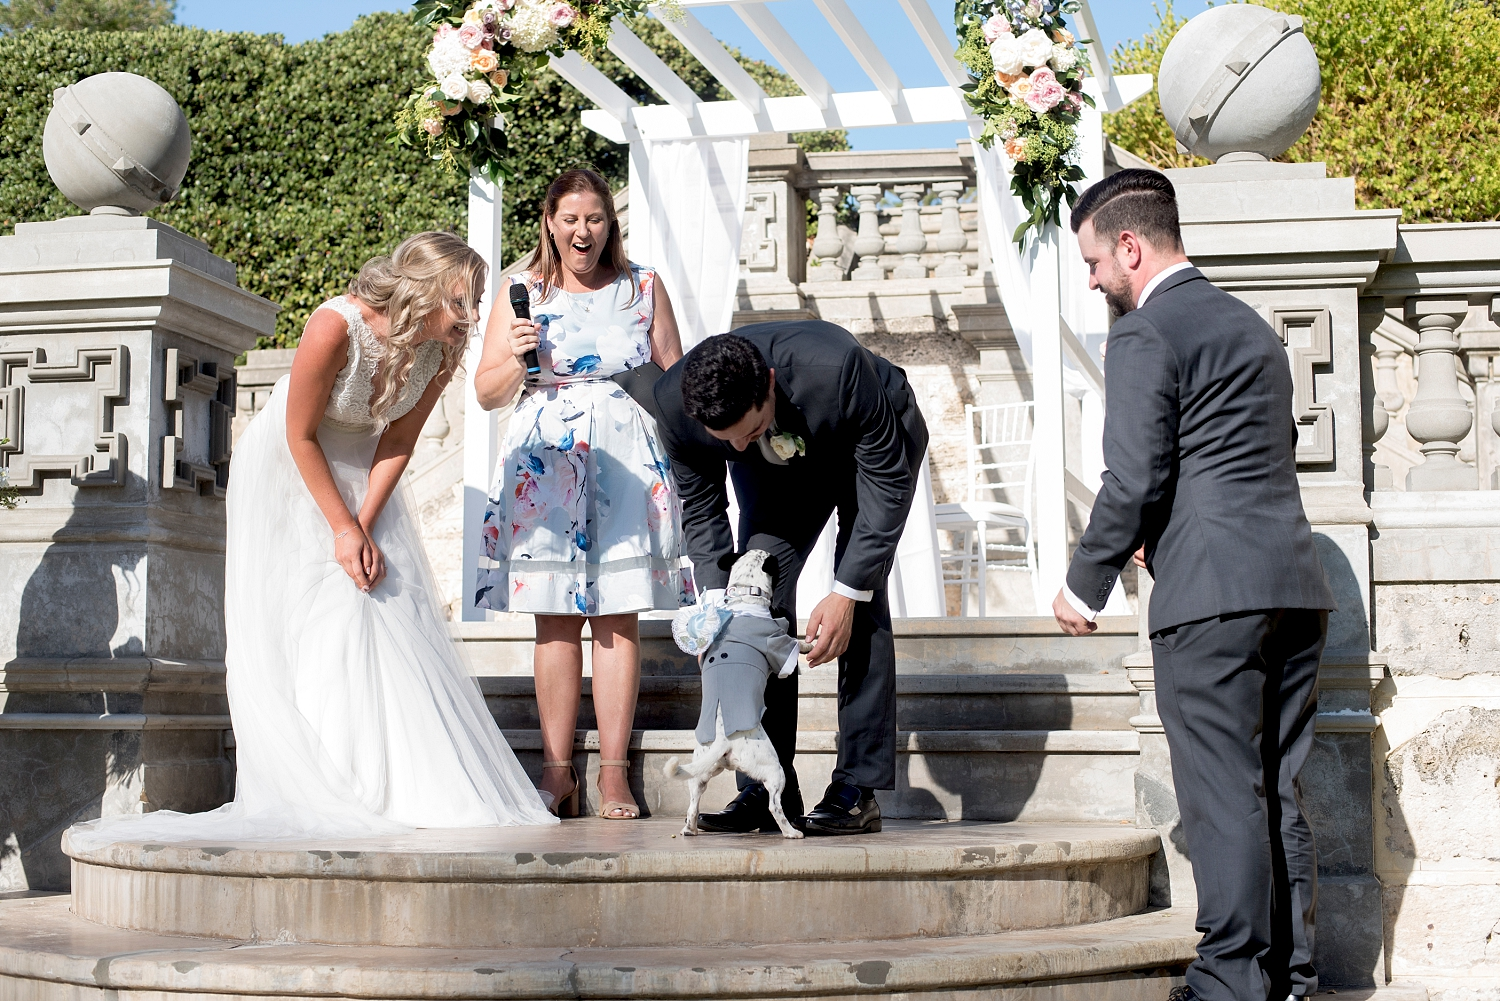 32_cottesloe civic centre wedding perth with dog as ring bearer.jpg